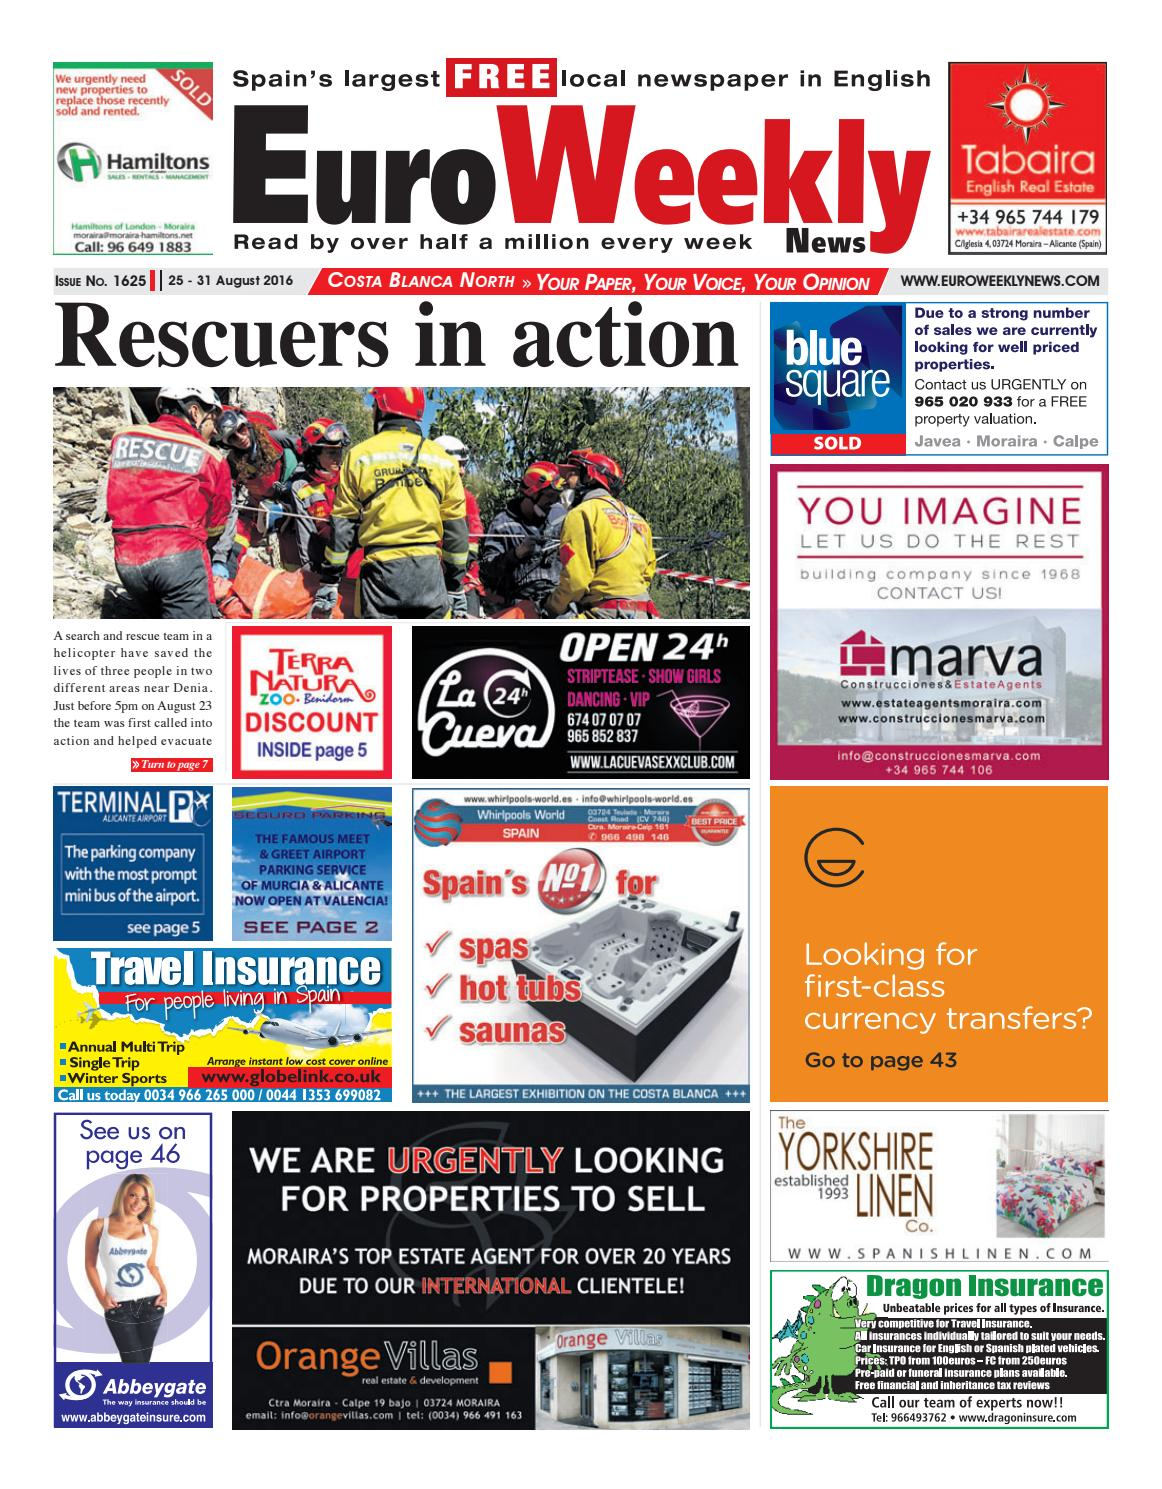 Euro Weekly News - Costa Blanca North 25 - 31 August 2016 Issue 1625 by  Euro Weekly News Media S.A. - issuu